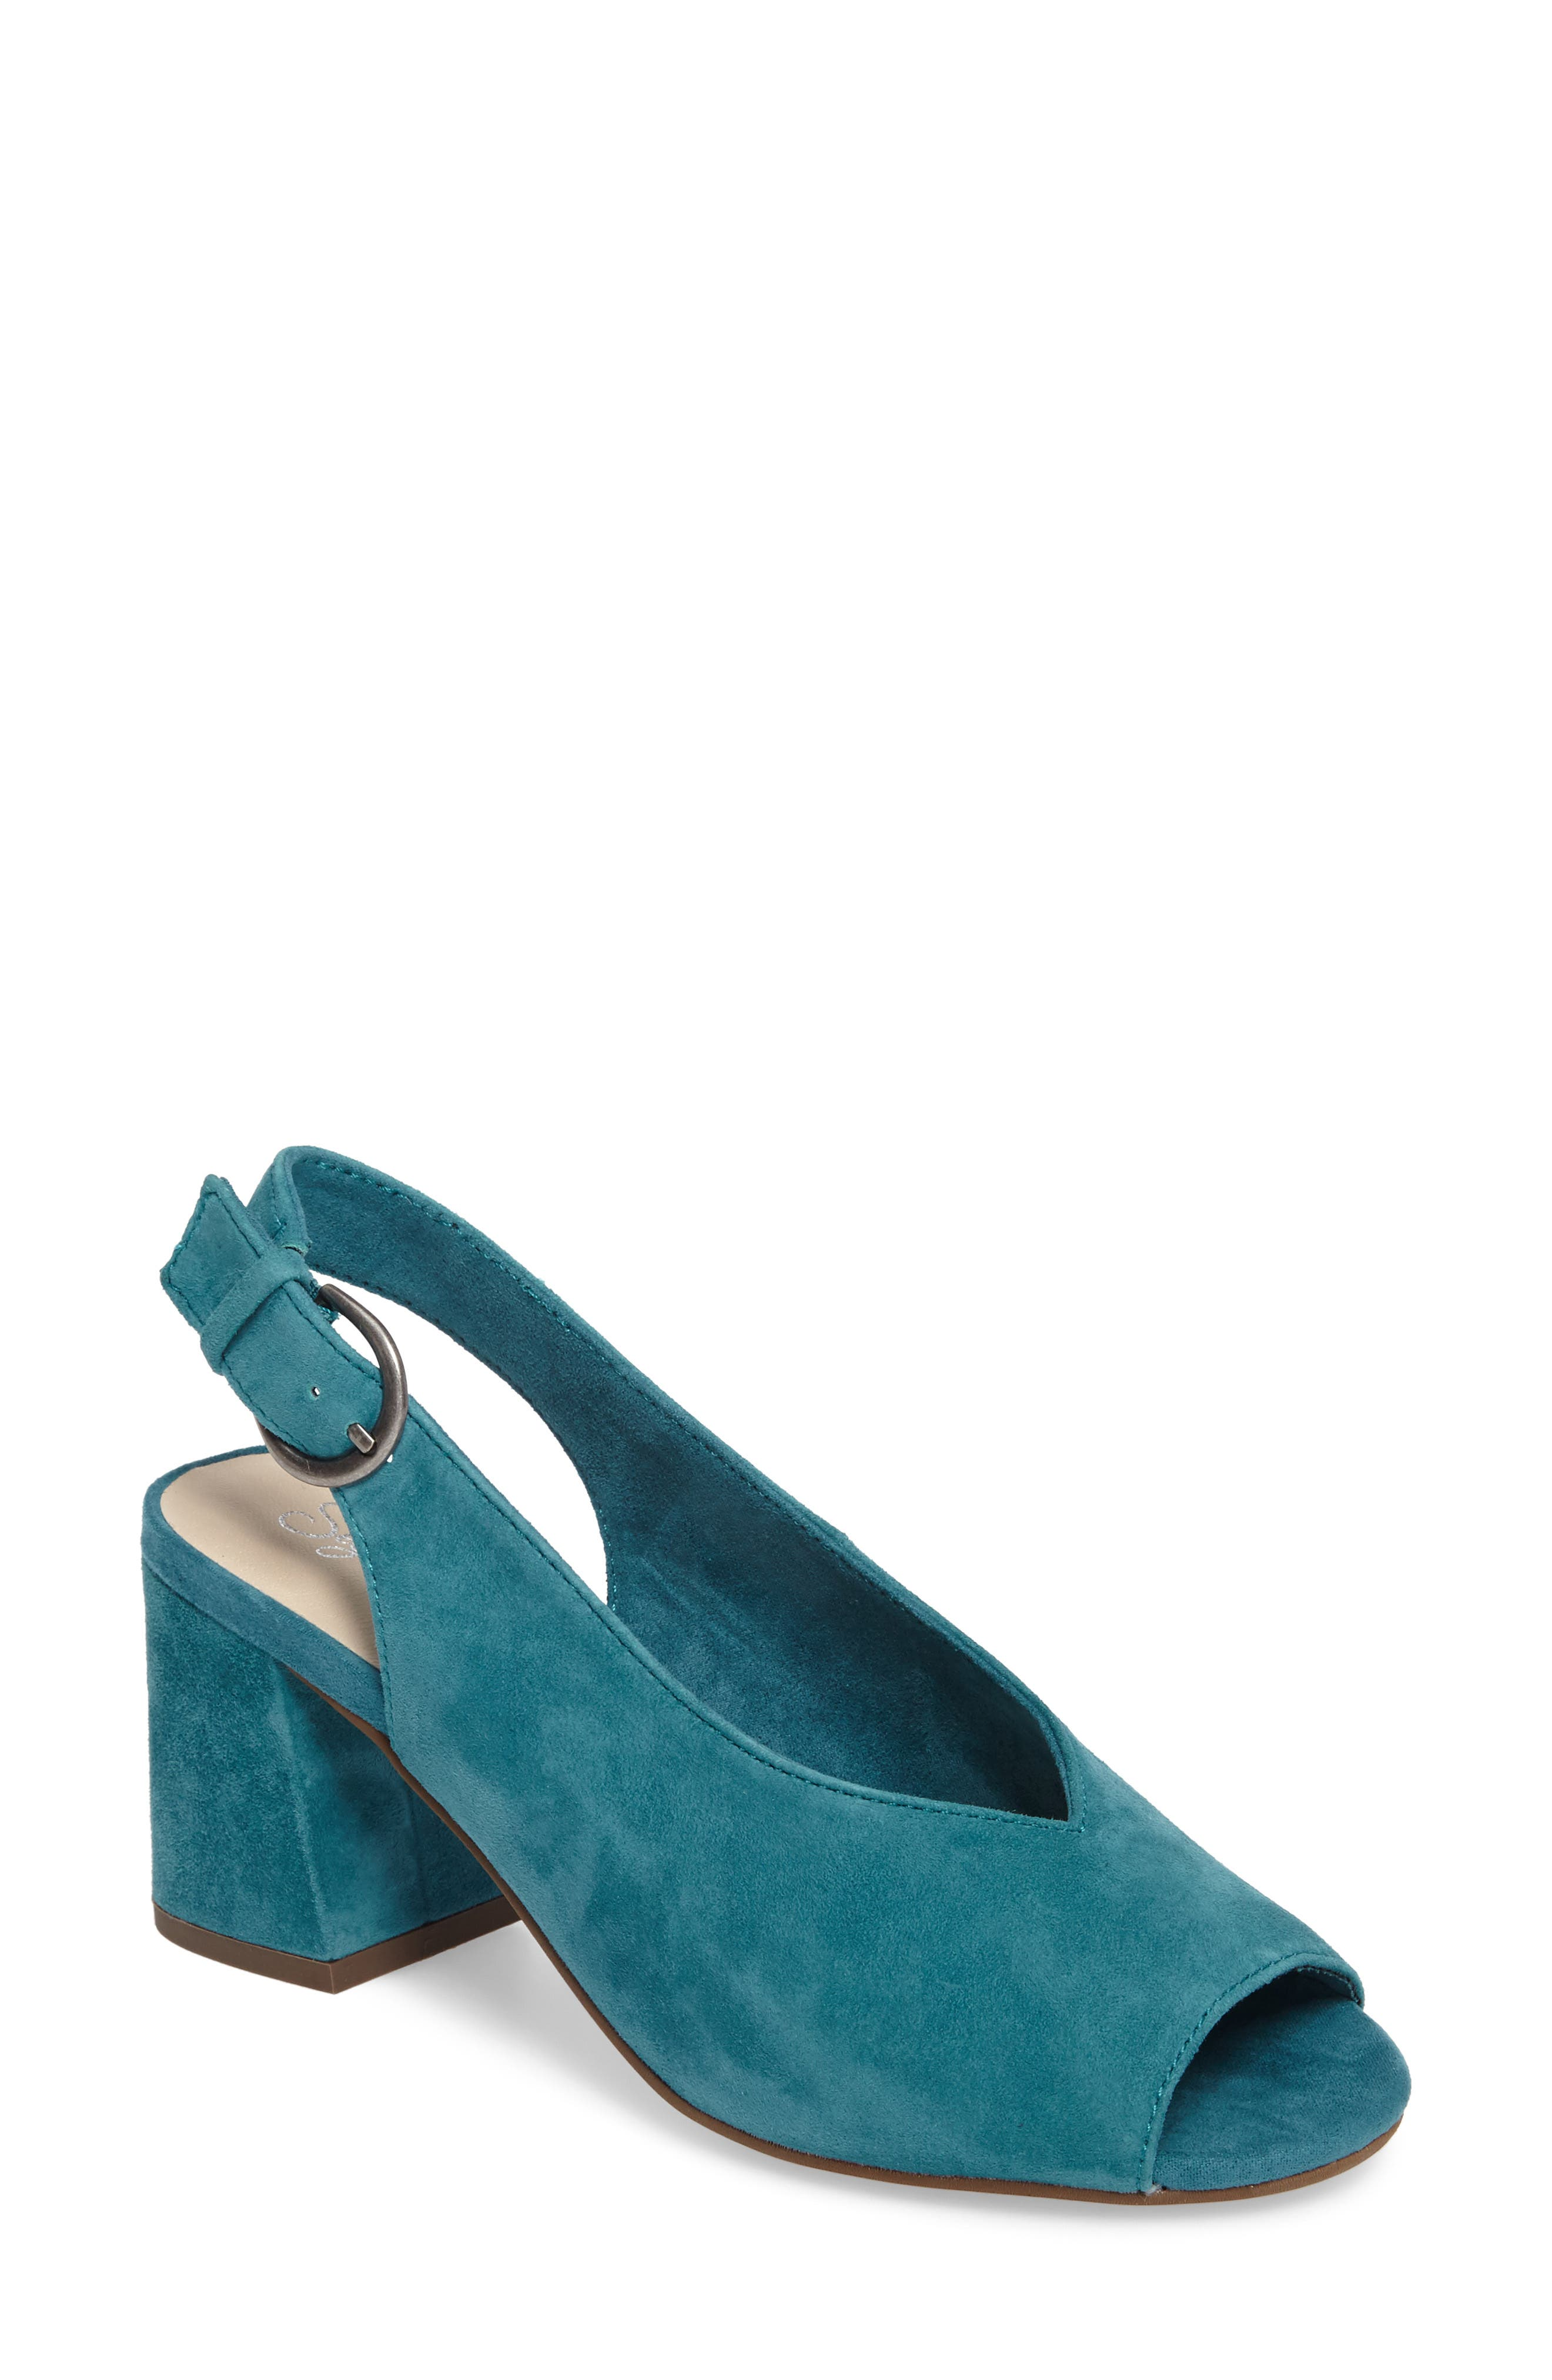 Playwright Slingback Sandal,                         Main,                         color, TEAL SUEDE